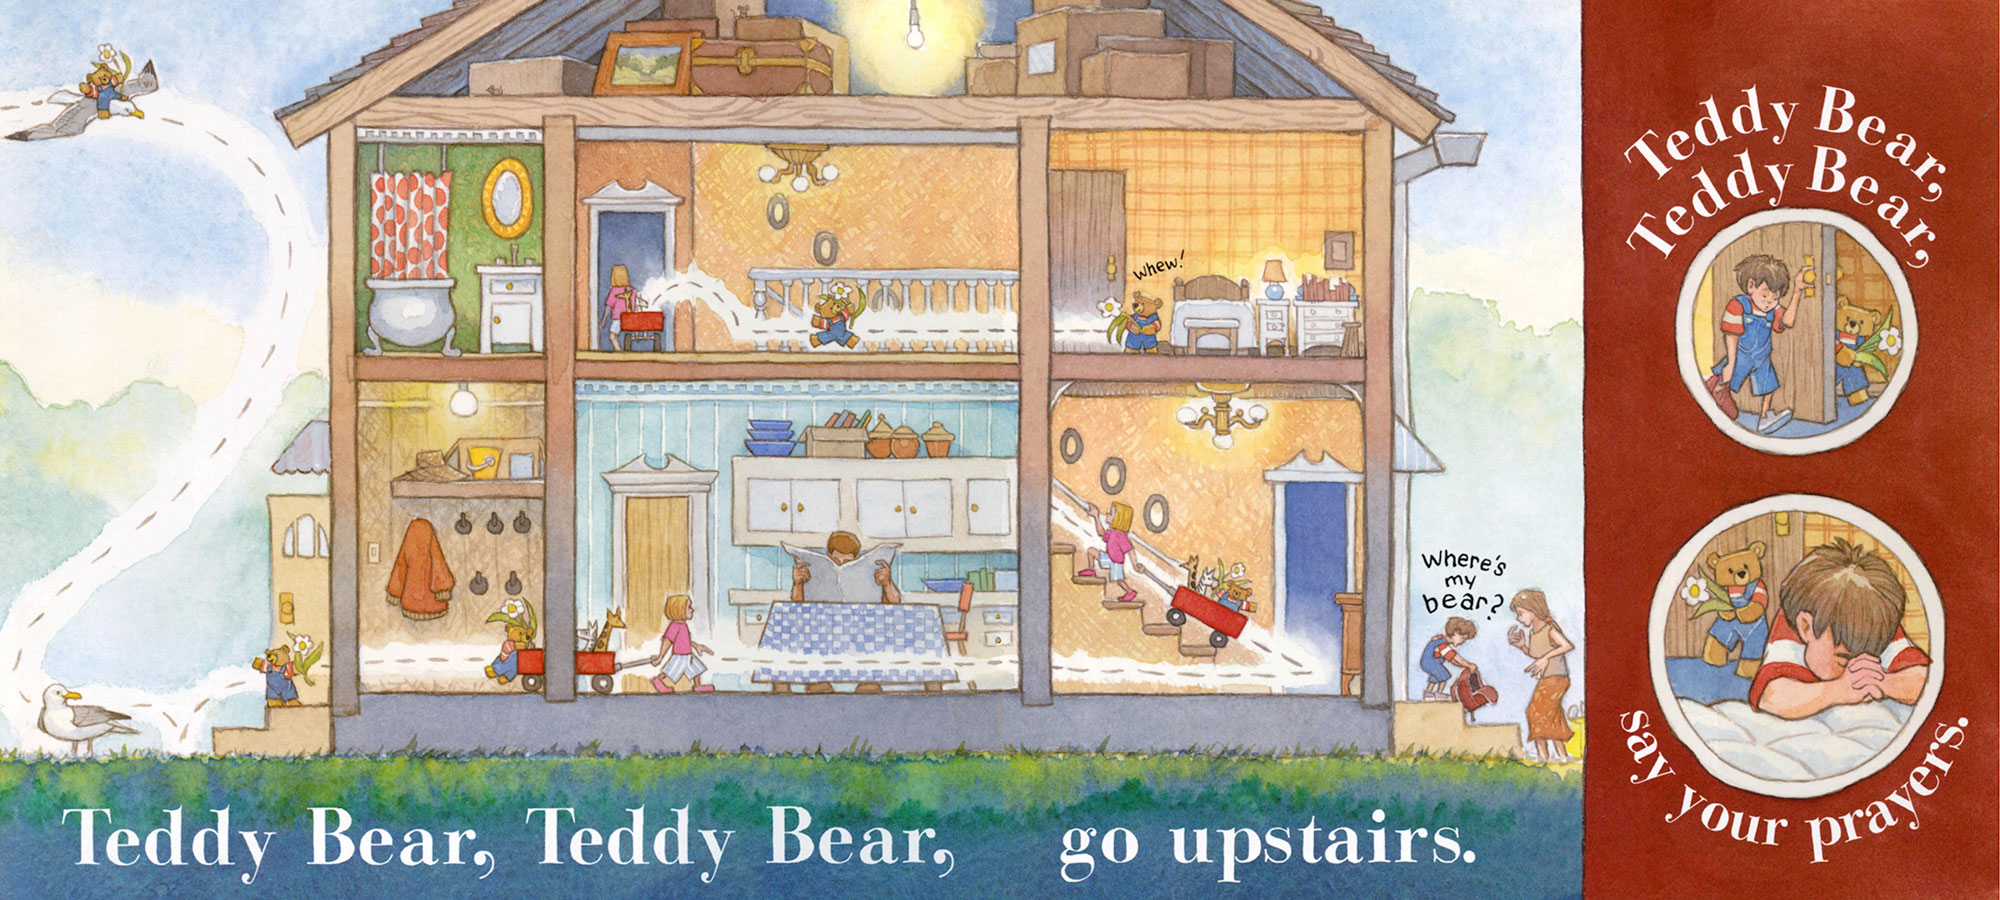 Teddy Bear, Teddy Bear  Greenwillow Books, 2005; public domain text